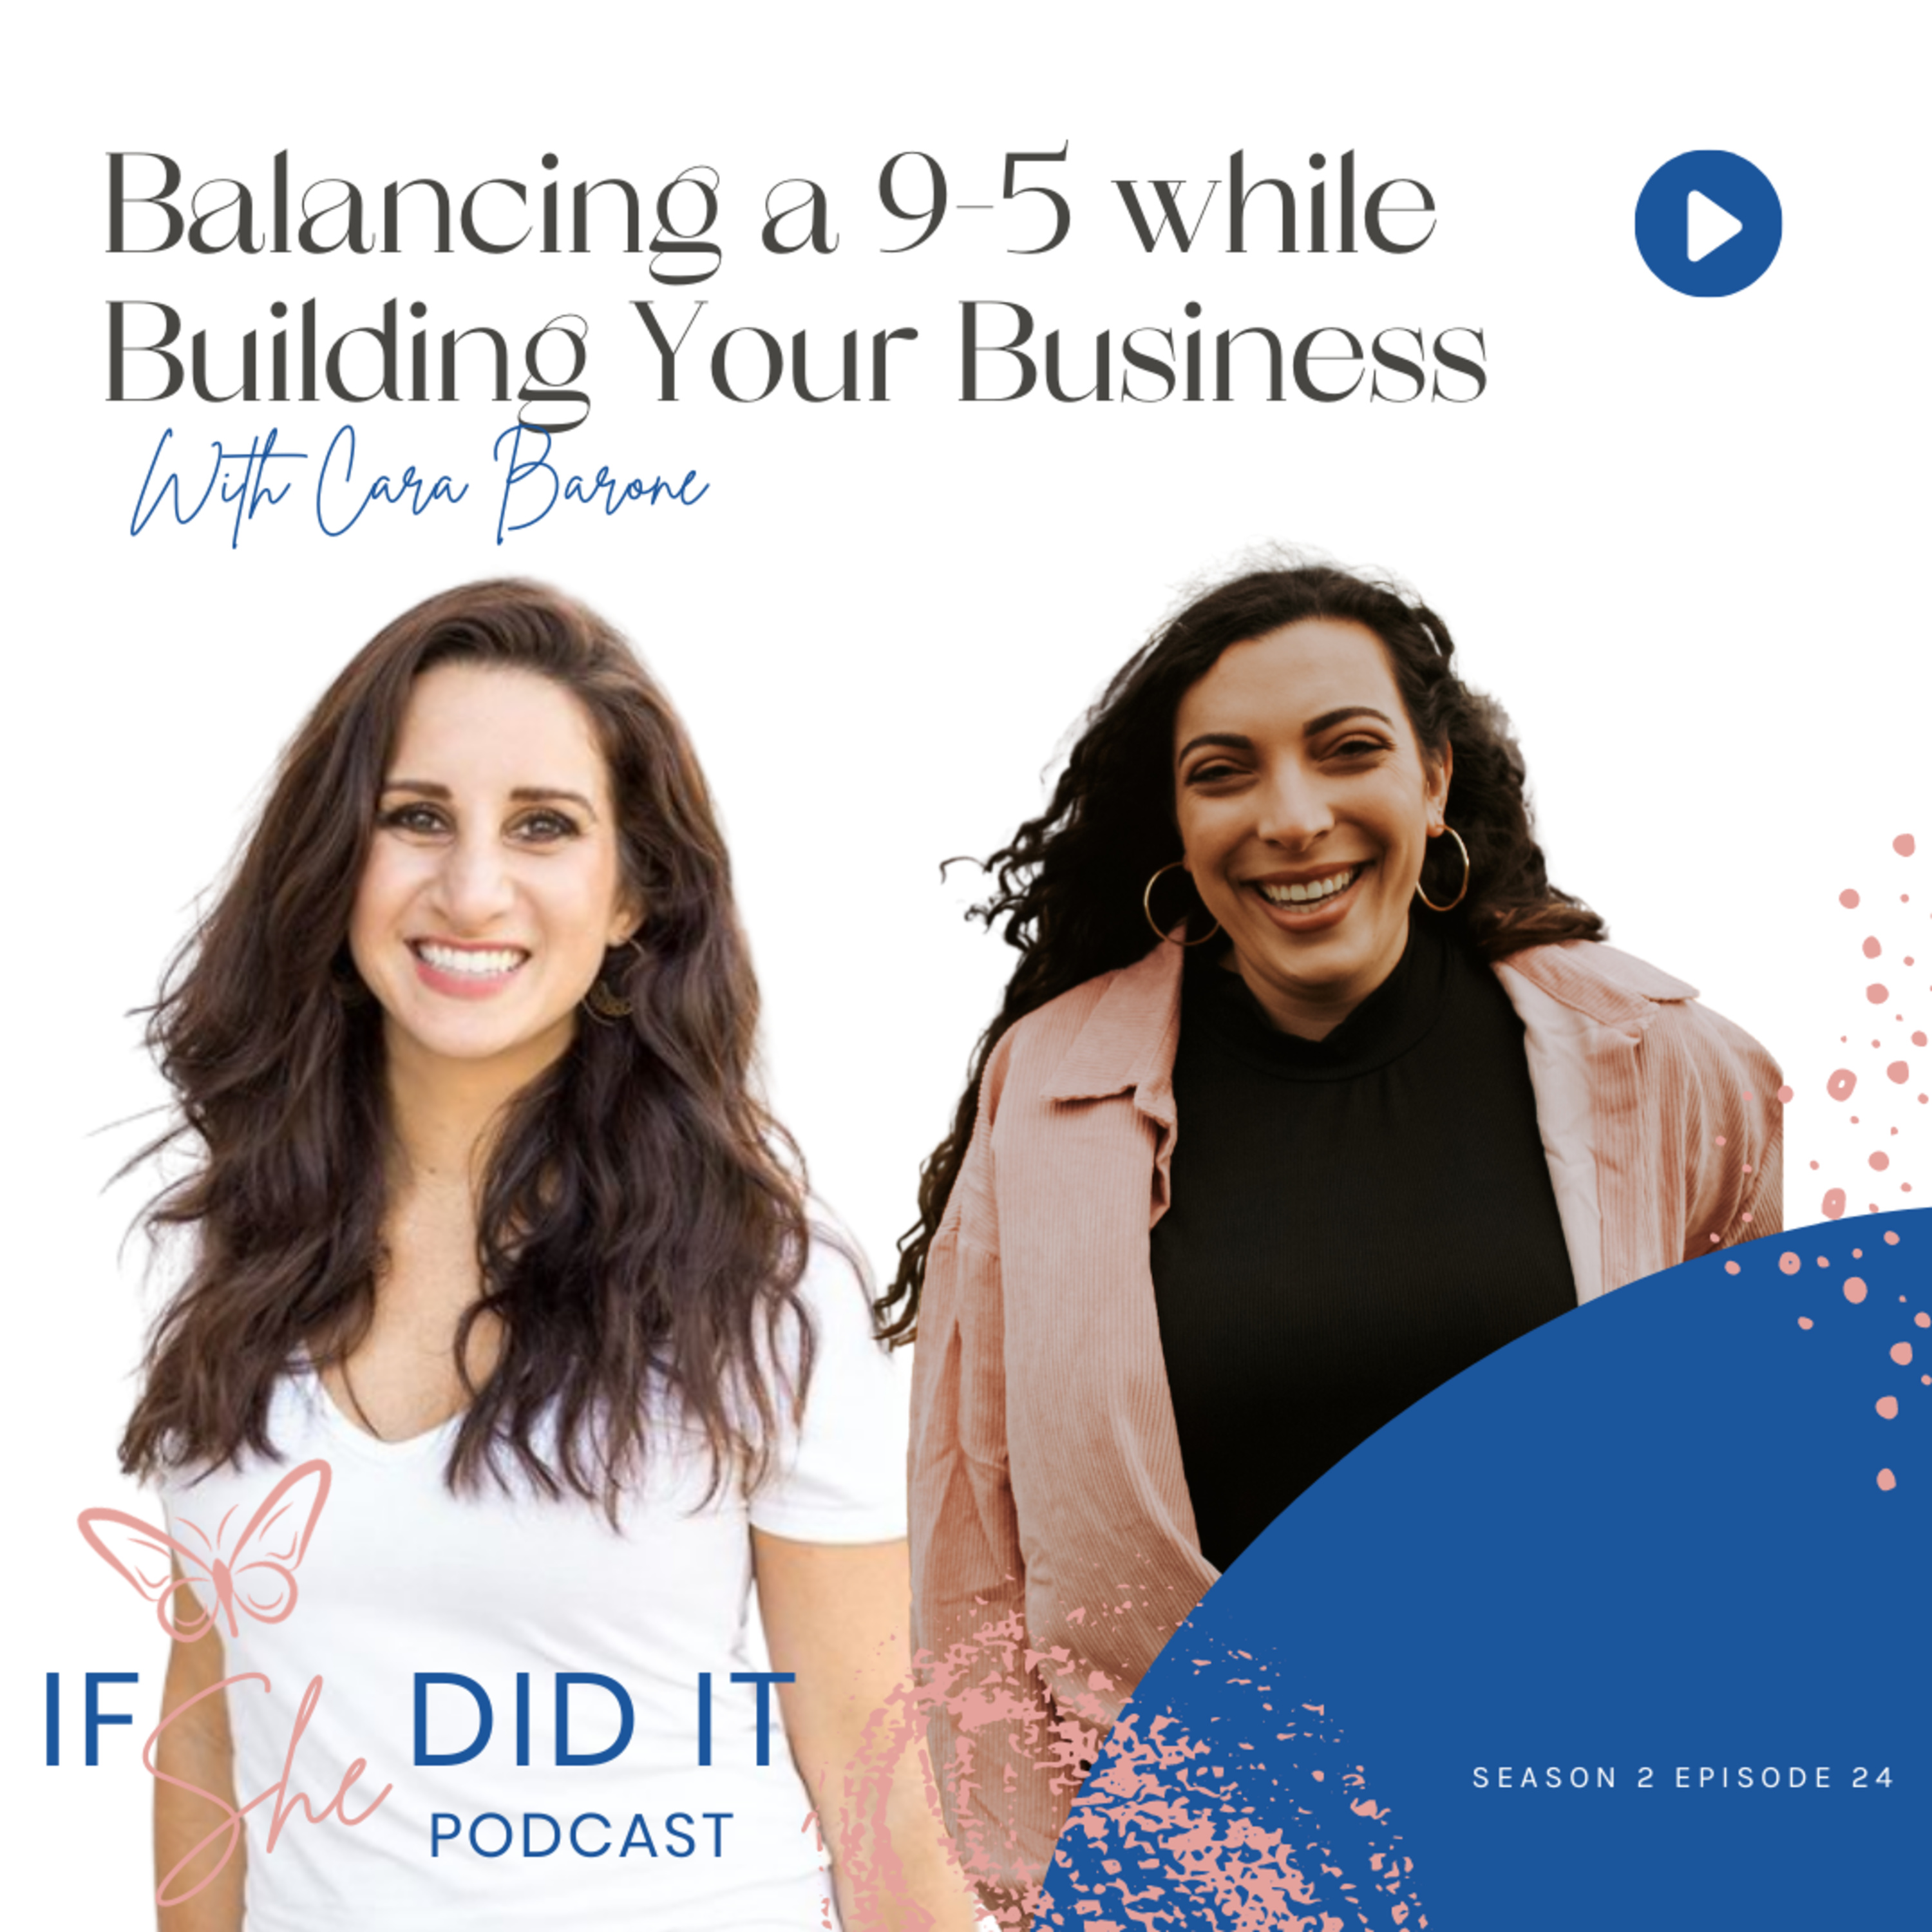 Balancing a 9-5 While Building Your Business